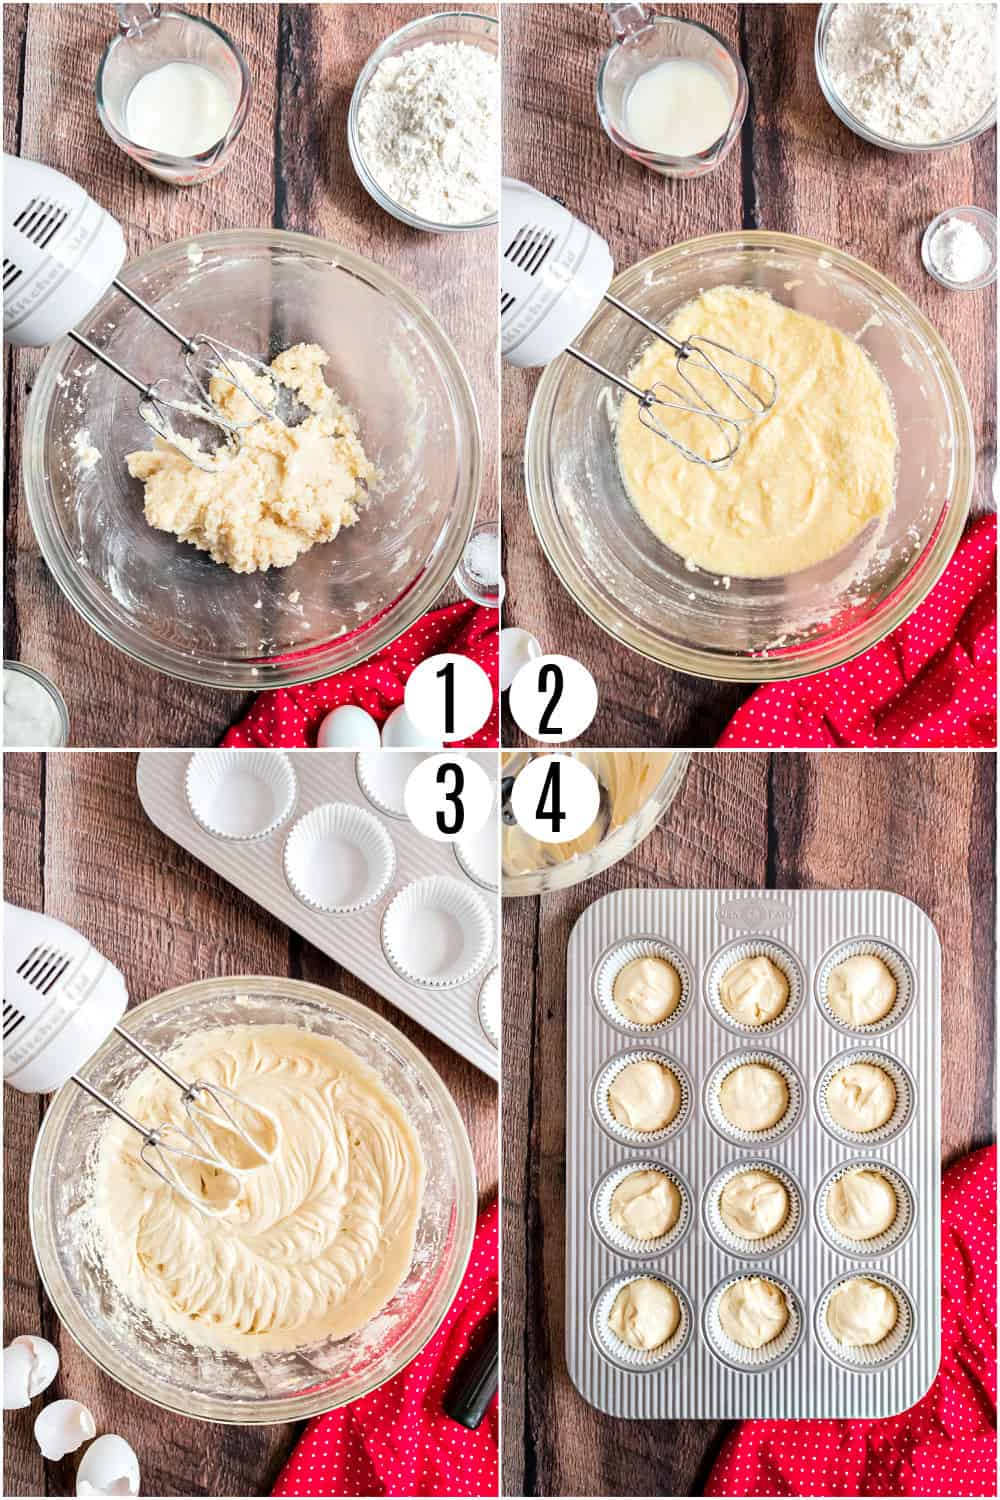 Step by step photos showing how to make yellow cupcakes.